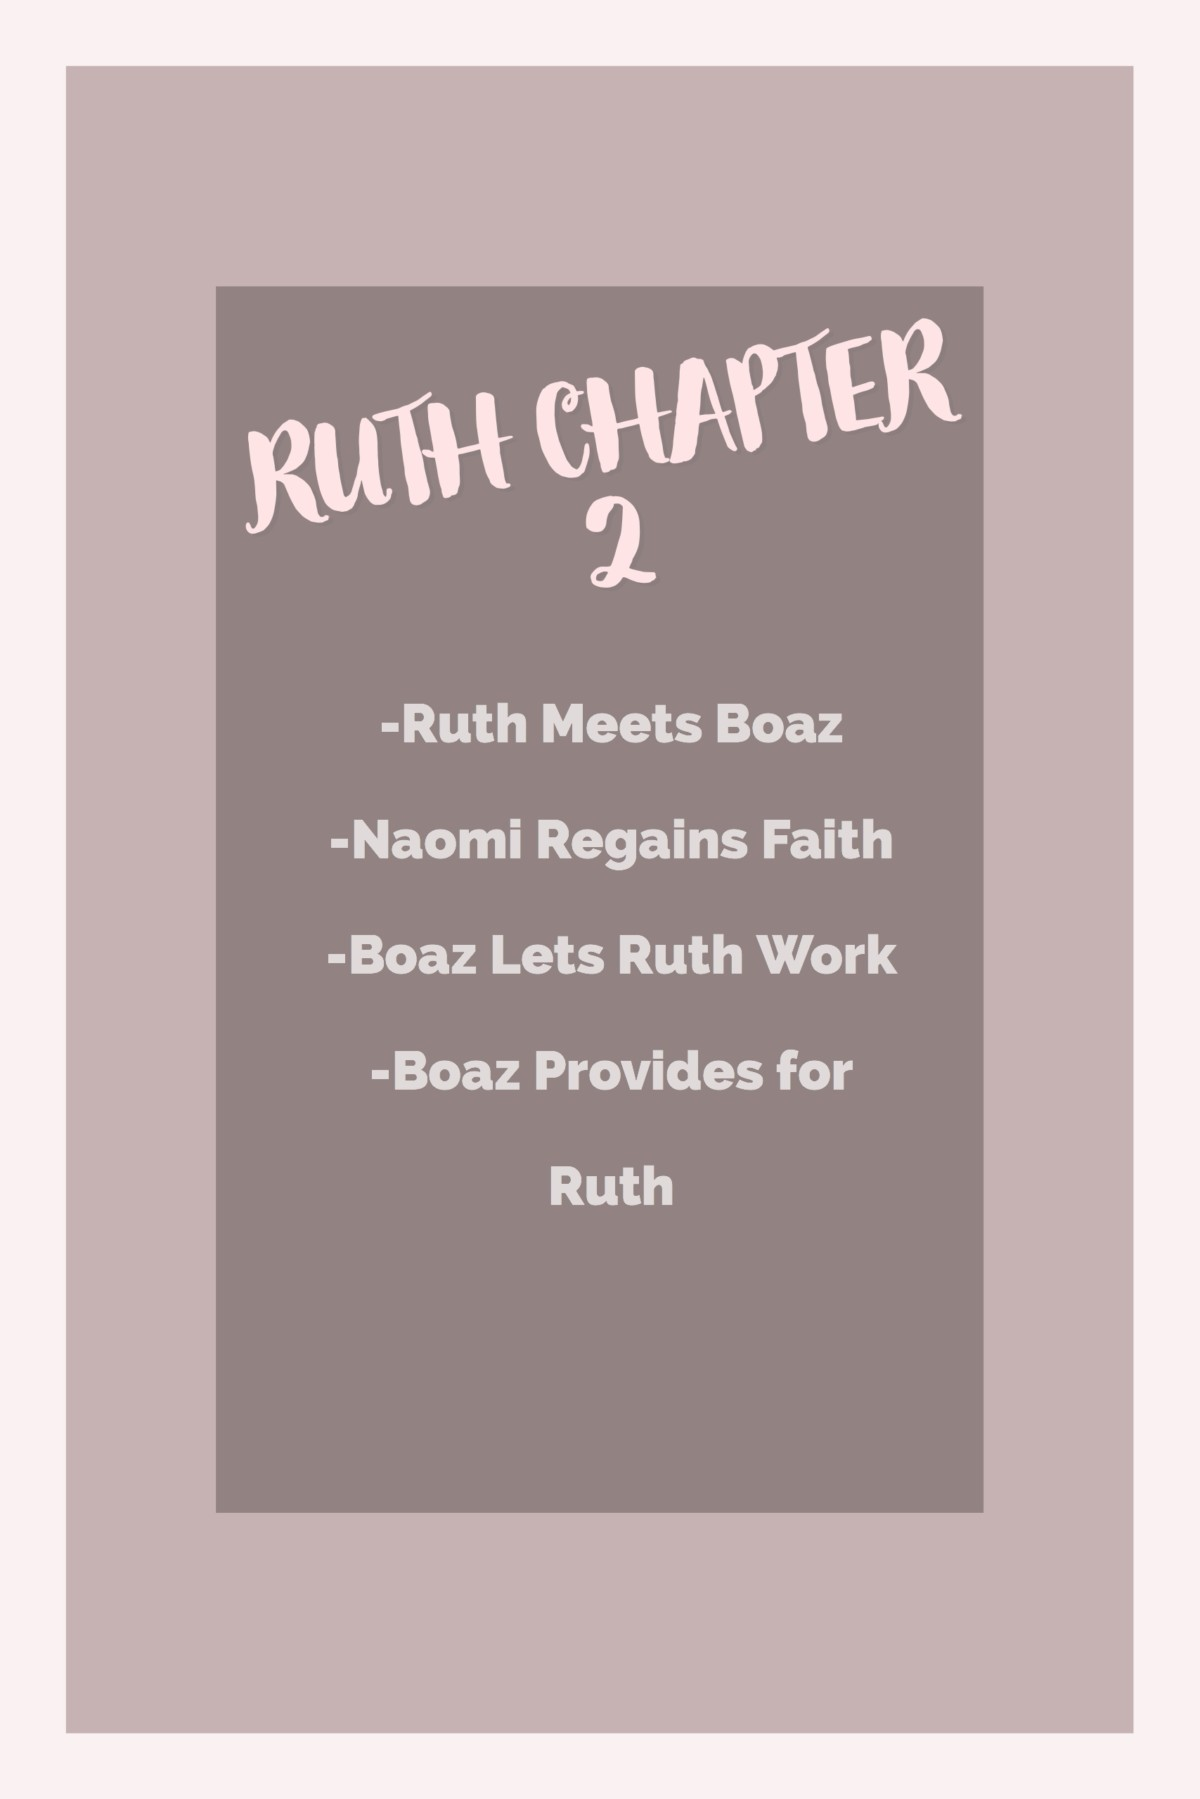 Ruth Chapter Two Bible Study